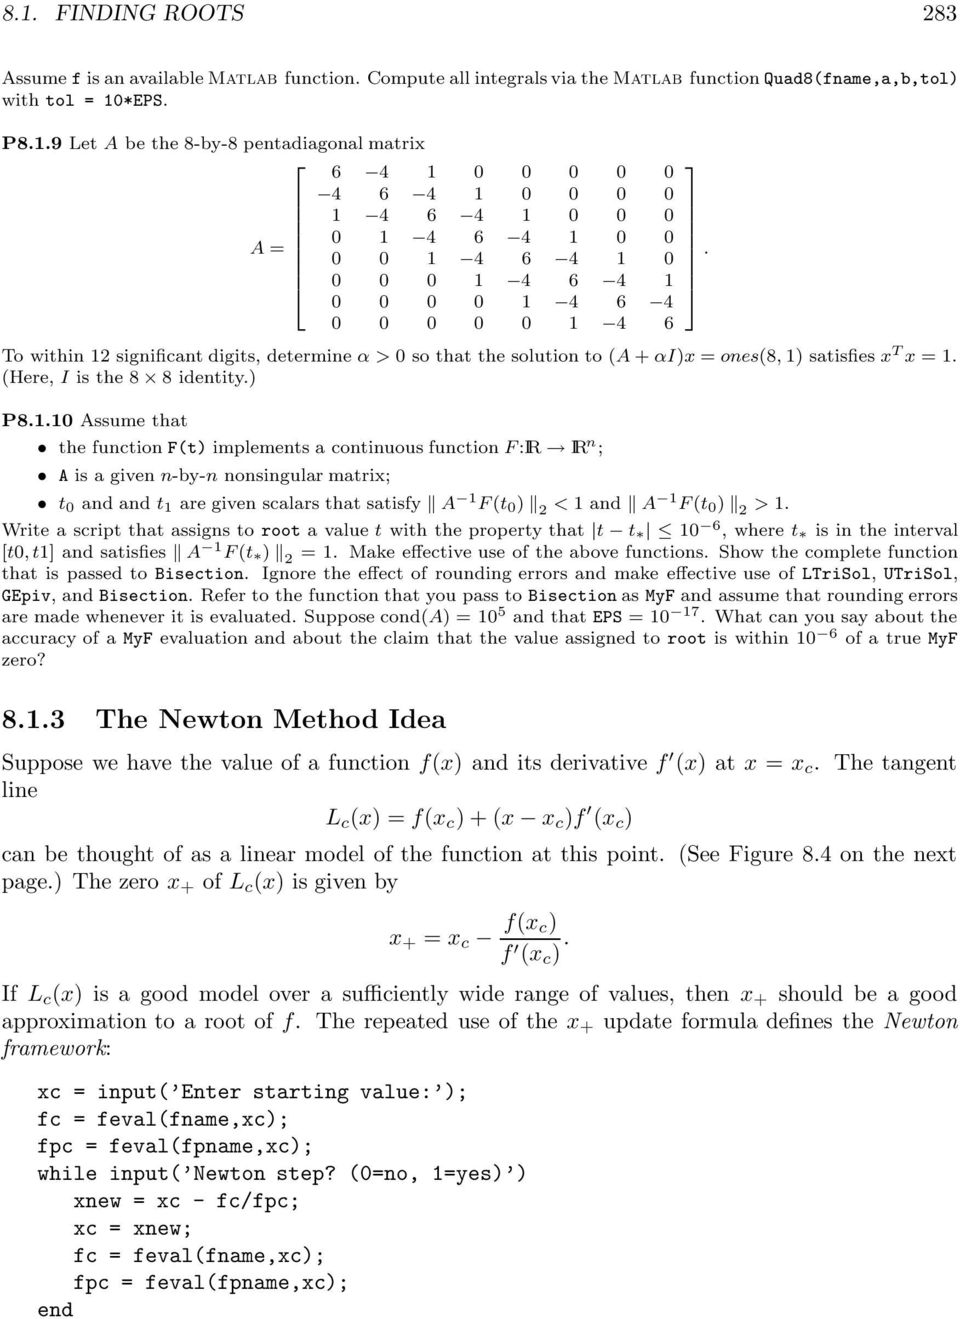 Nonlinear Equations and Optimization - PDF